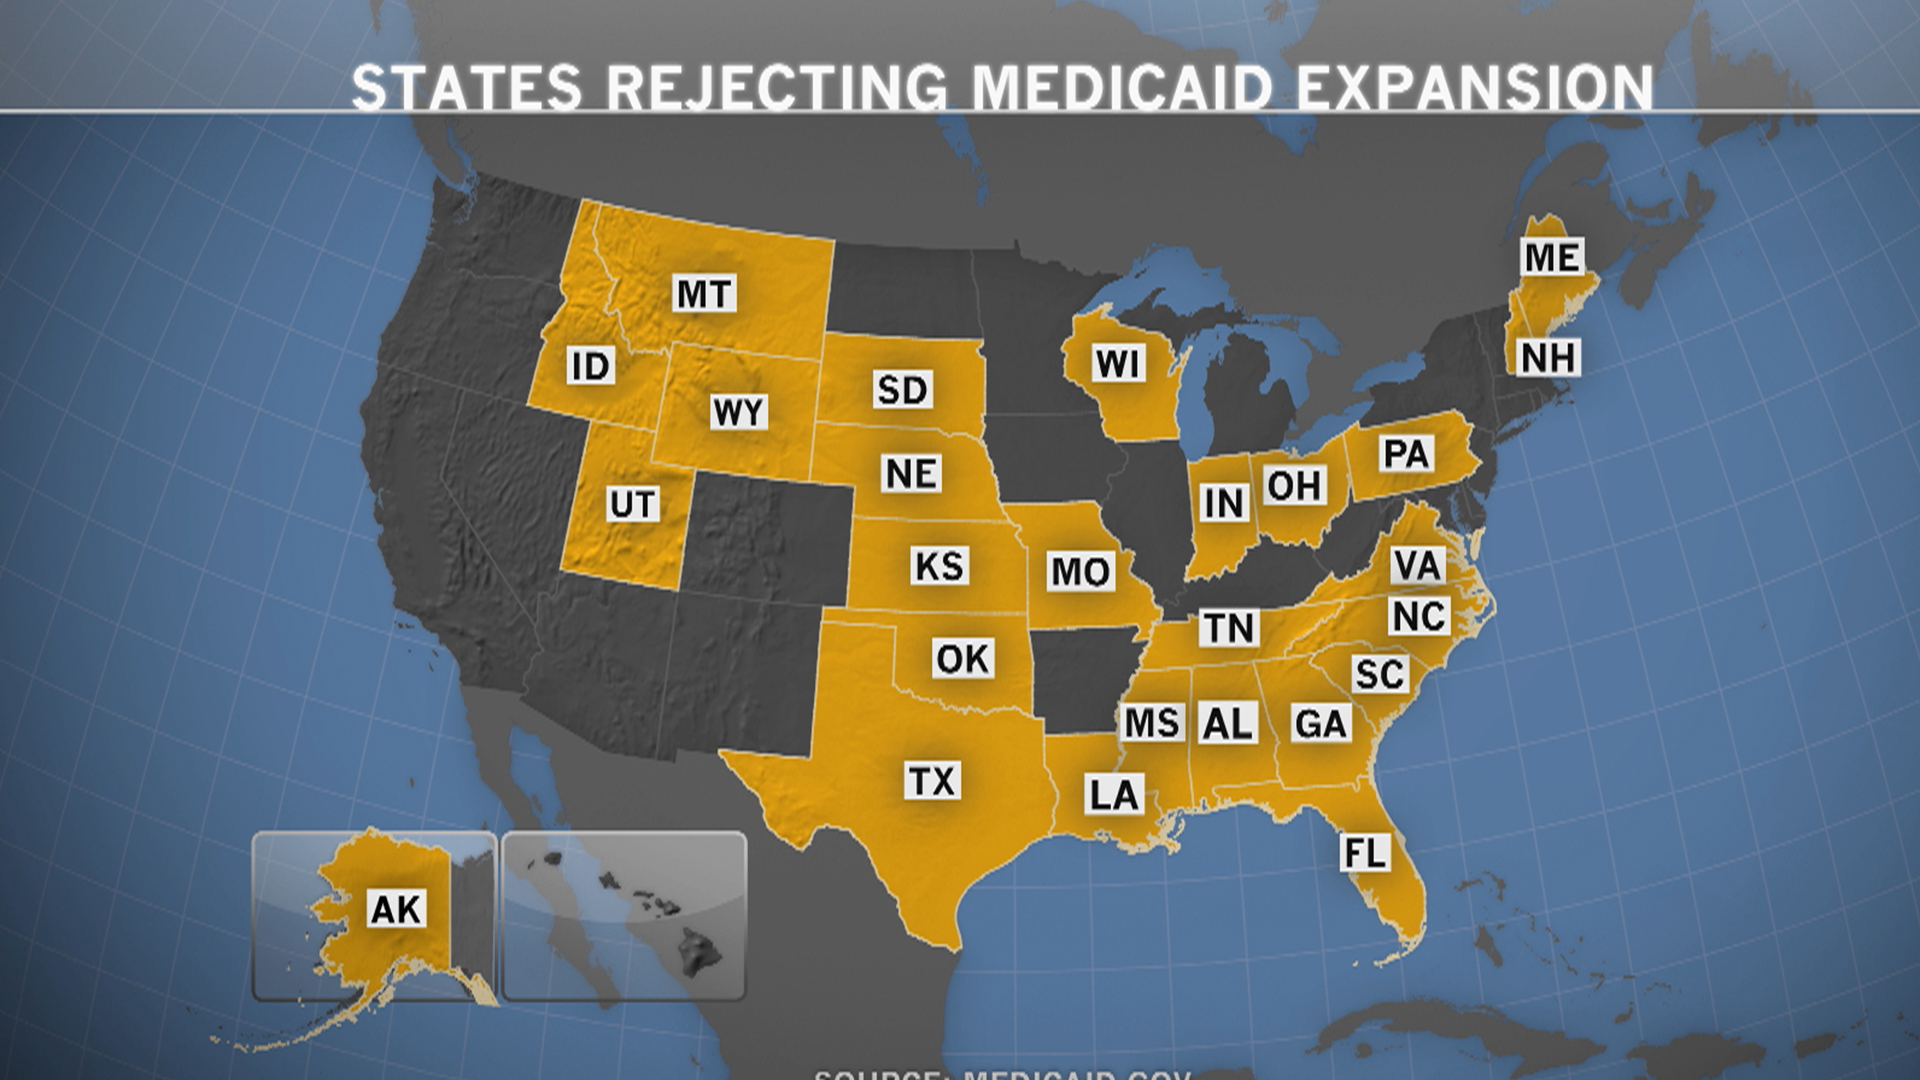 26 states reject Medicaid expansion